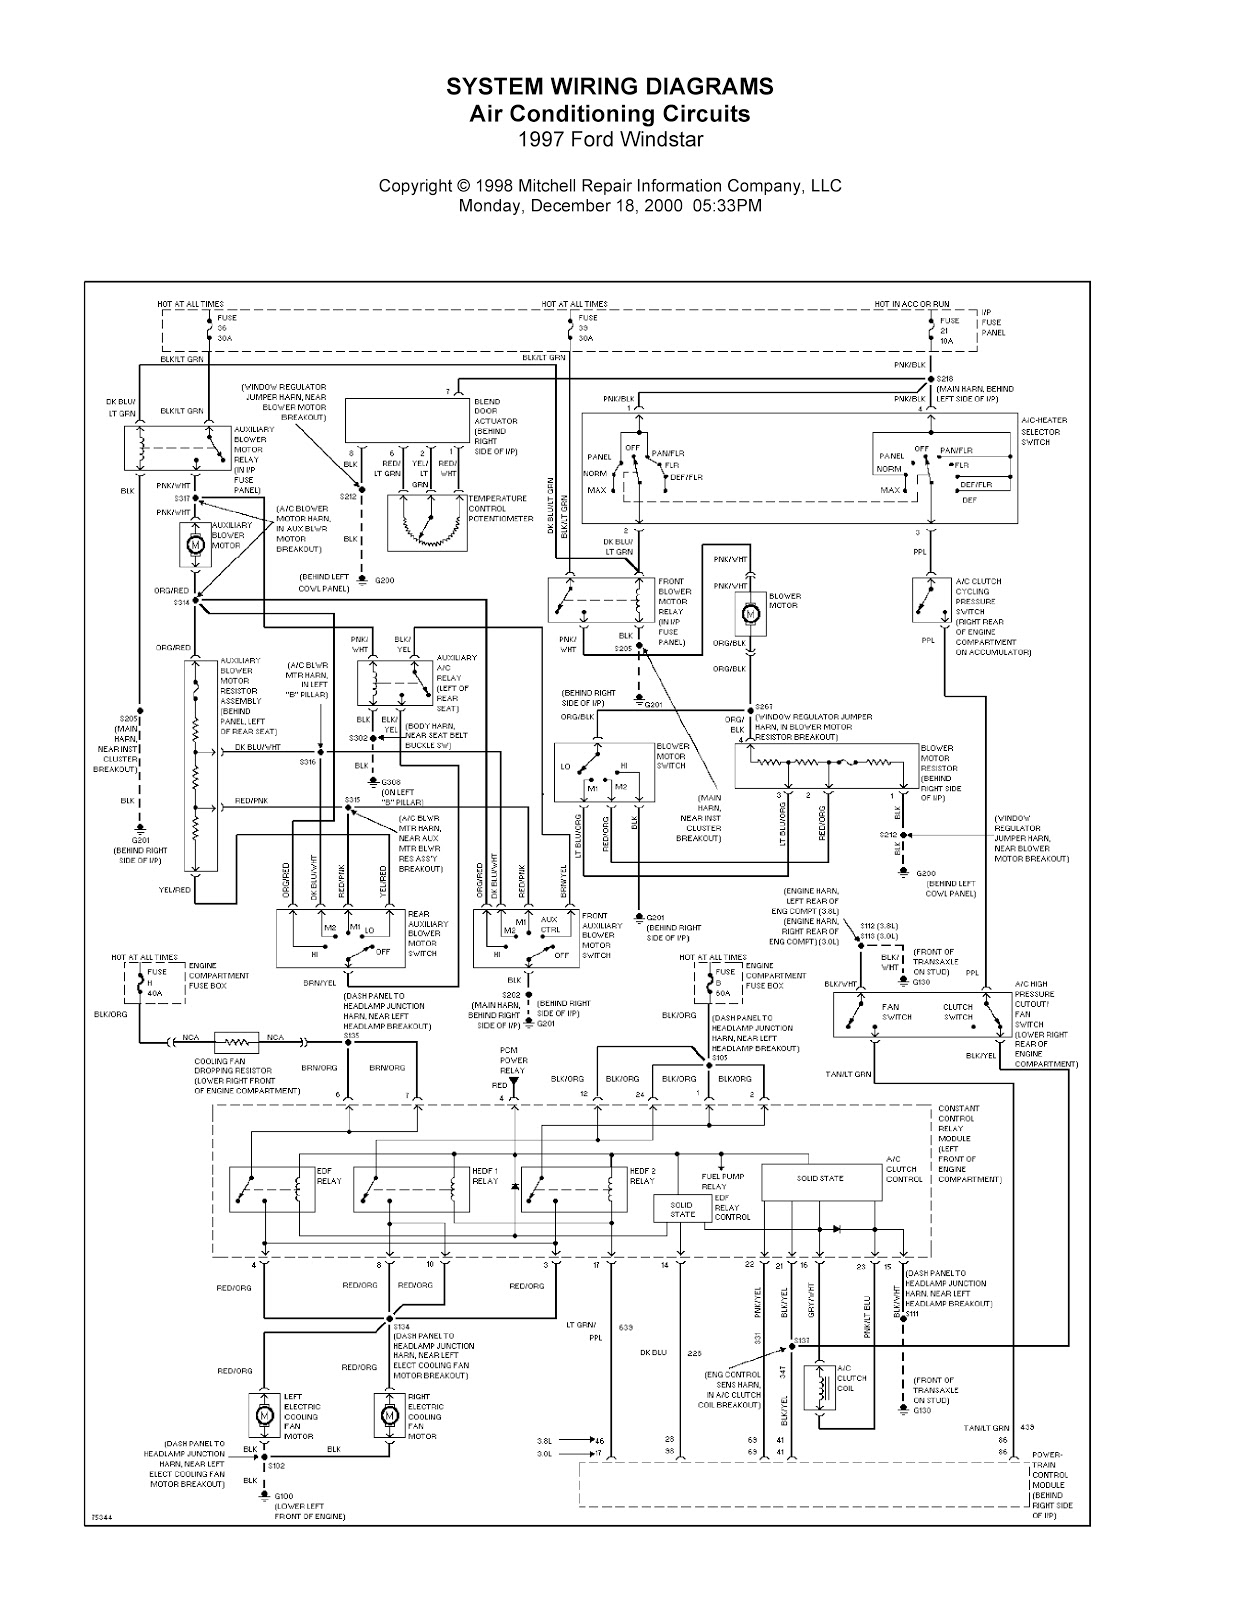 0001 1997 ford windstar complete system wiring diagrams wiring 2000 windstar fuse box diagram at n-0.co